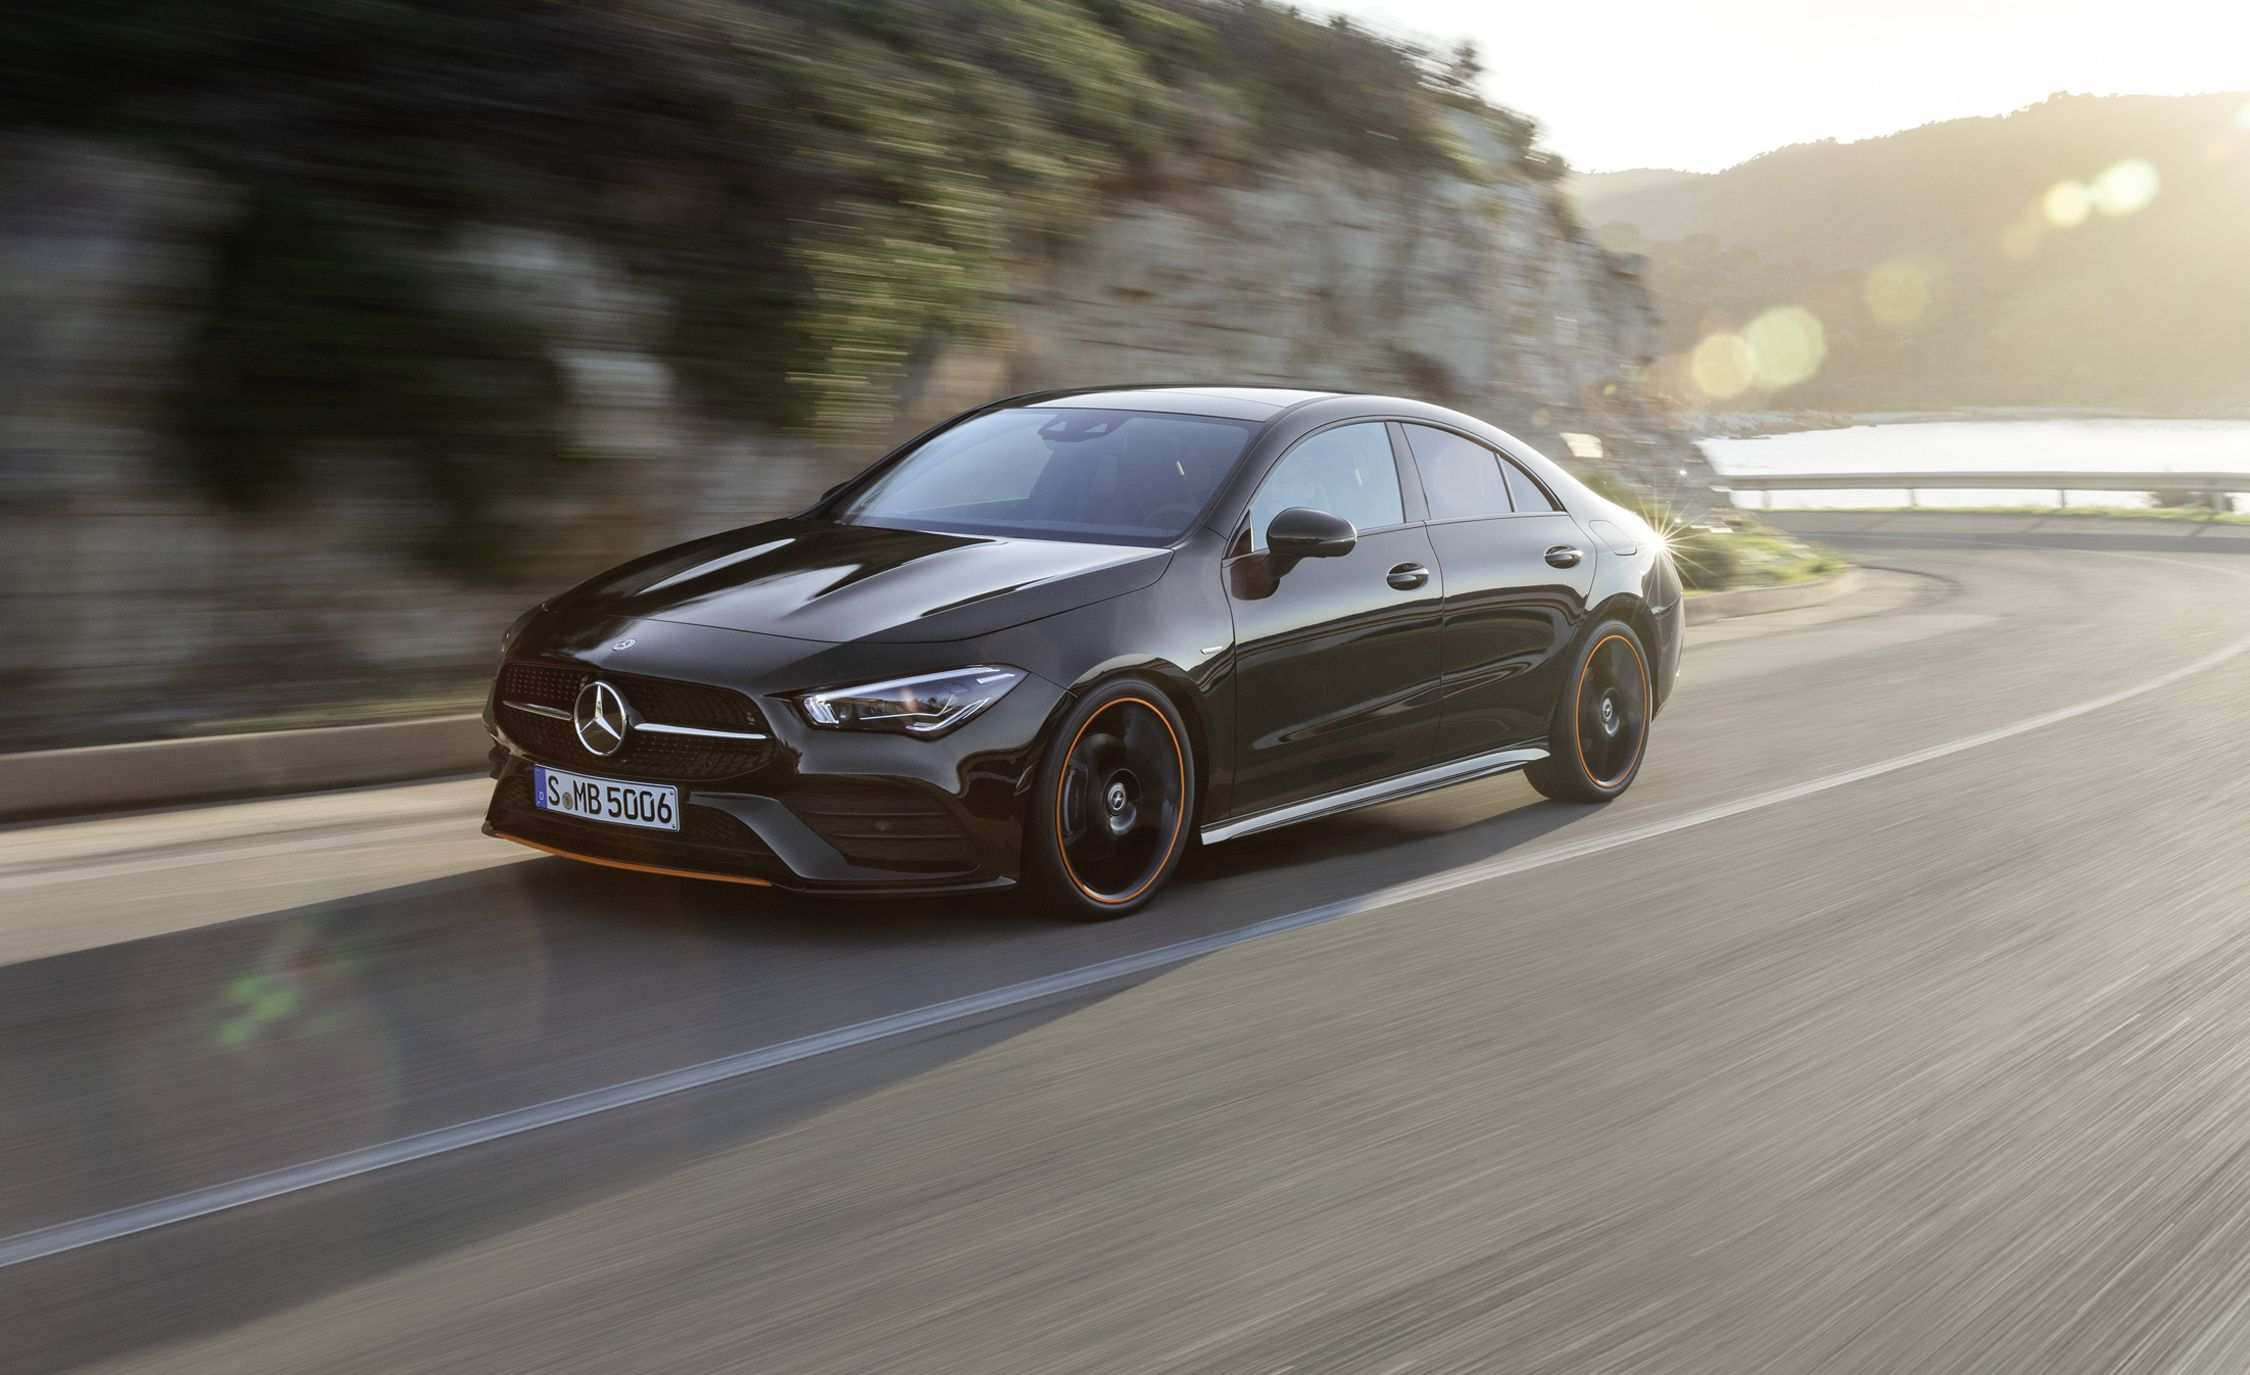 74 Concept of Cla Mercedes 2020 Ratings by Cla Mercedes 2020